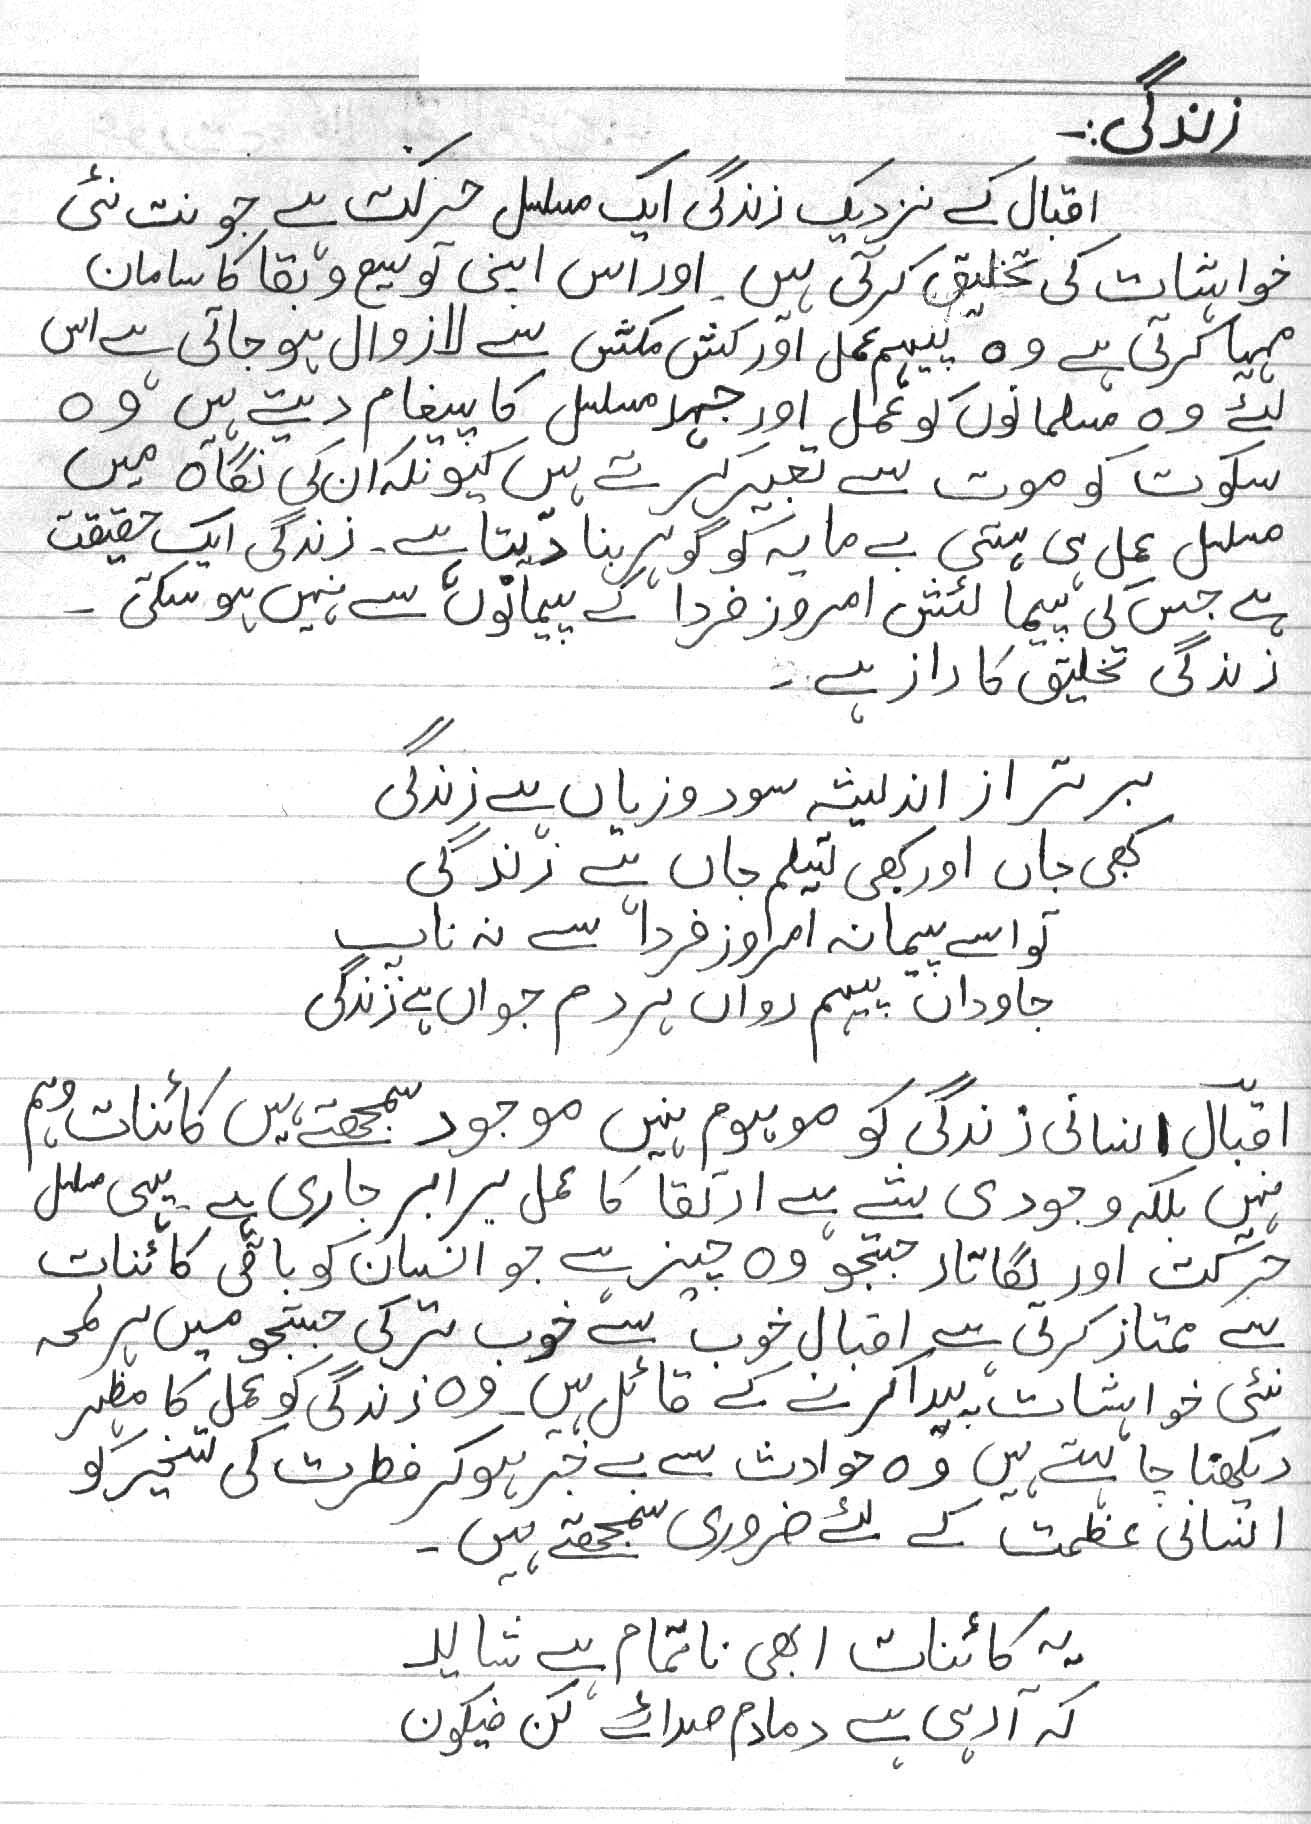 speech on mother in urdu Essay on mother introduction u know sir h i had to give a public speech in my school and my english is horrible i saw this speech and when i said it in front of my teacher i literally saw tears rolling down her cheeks.